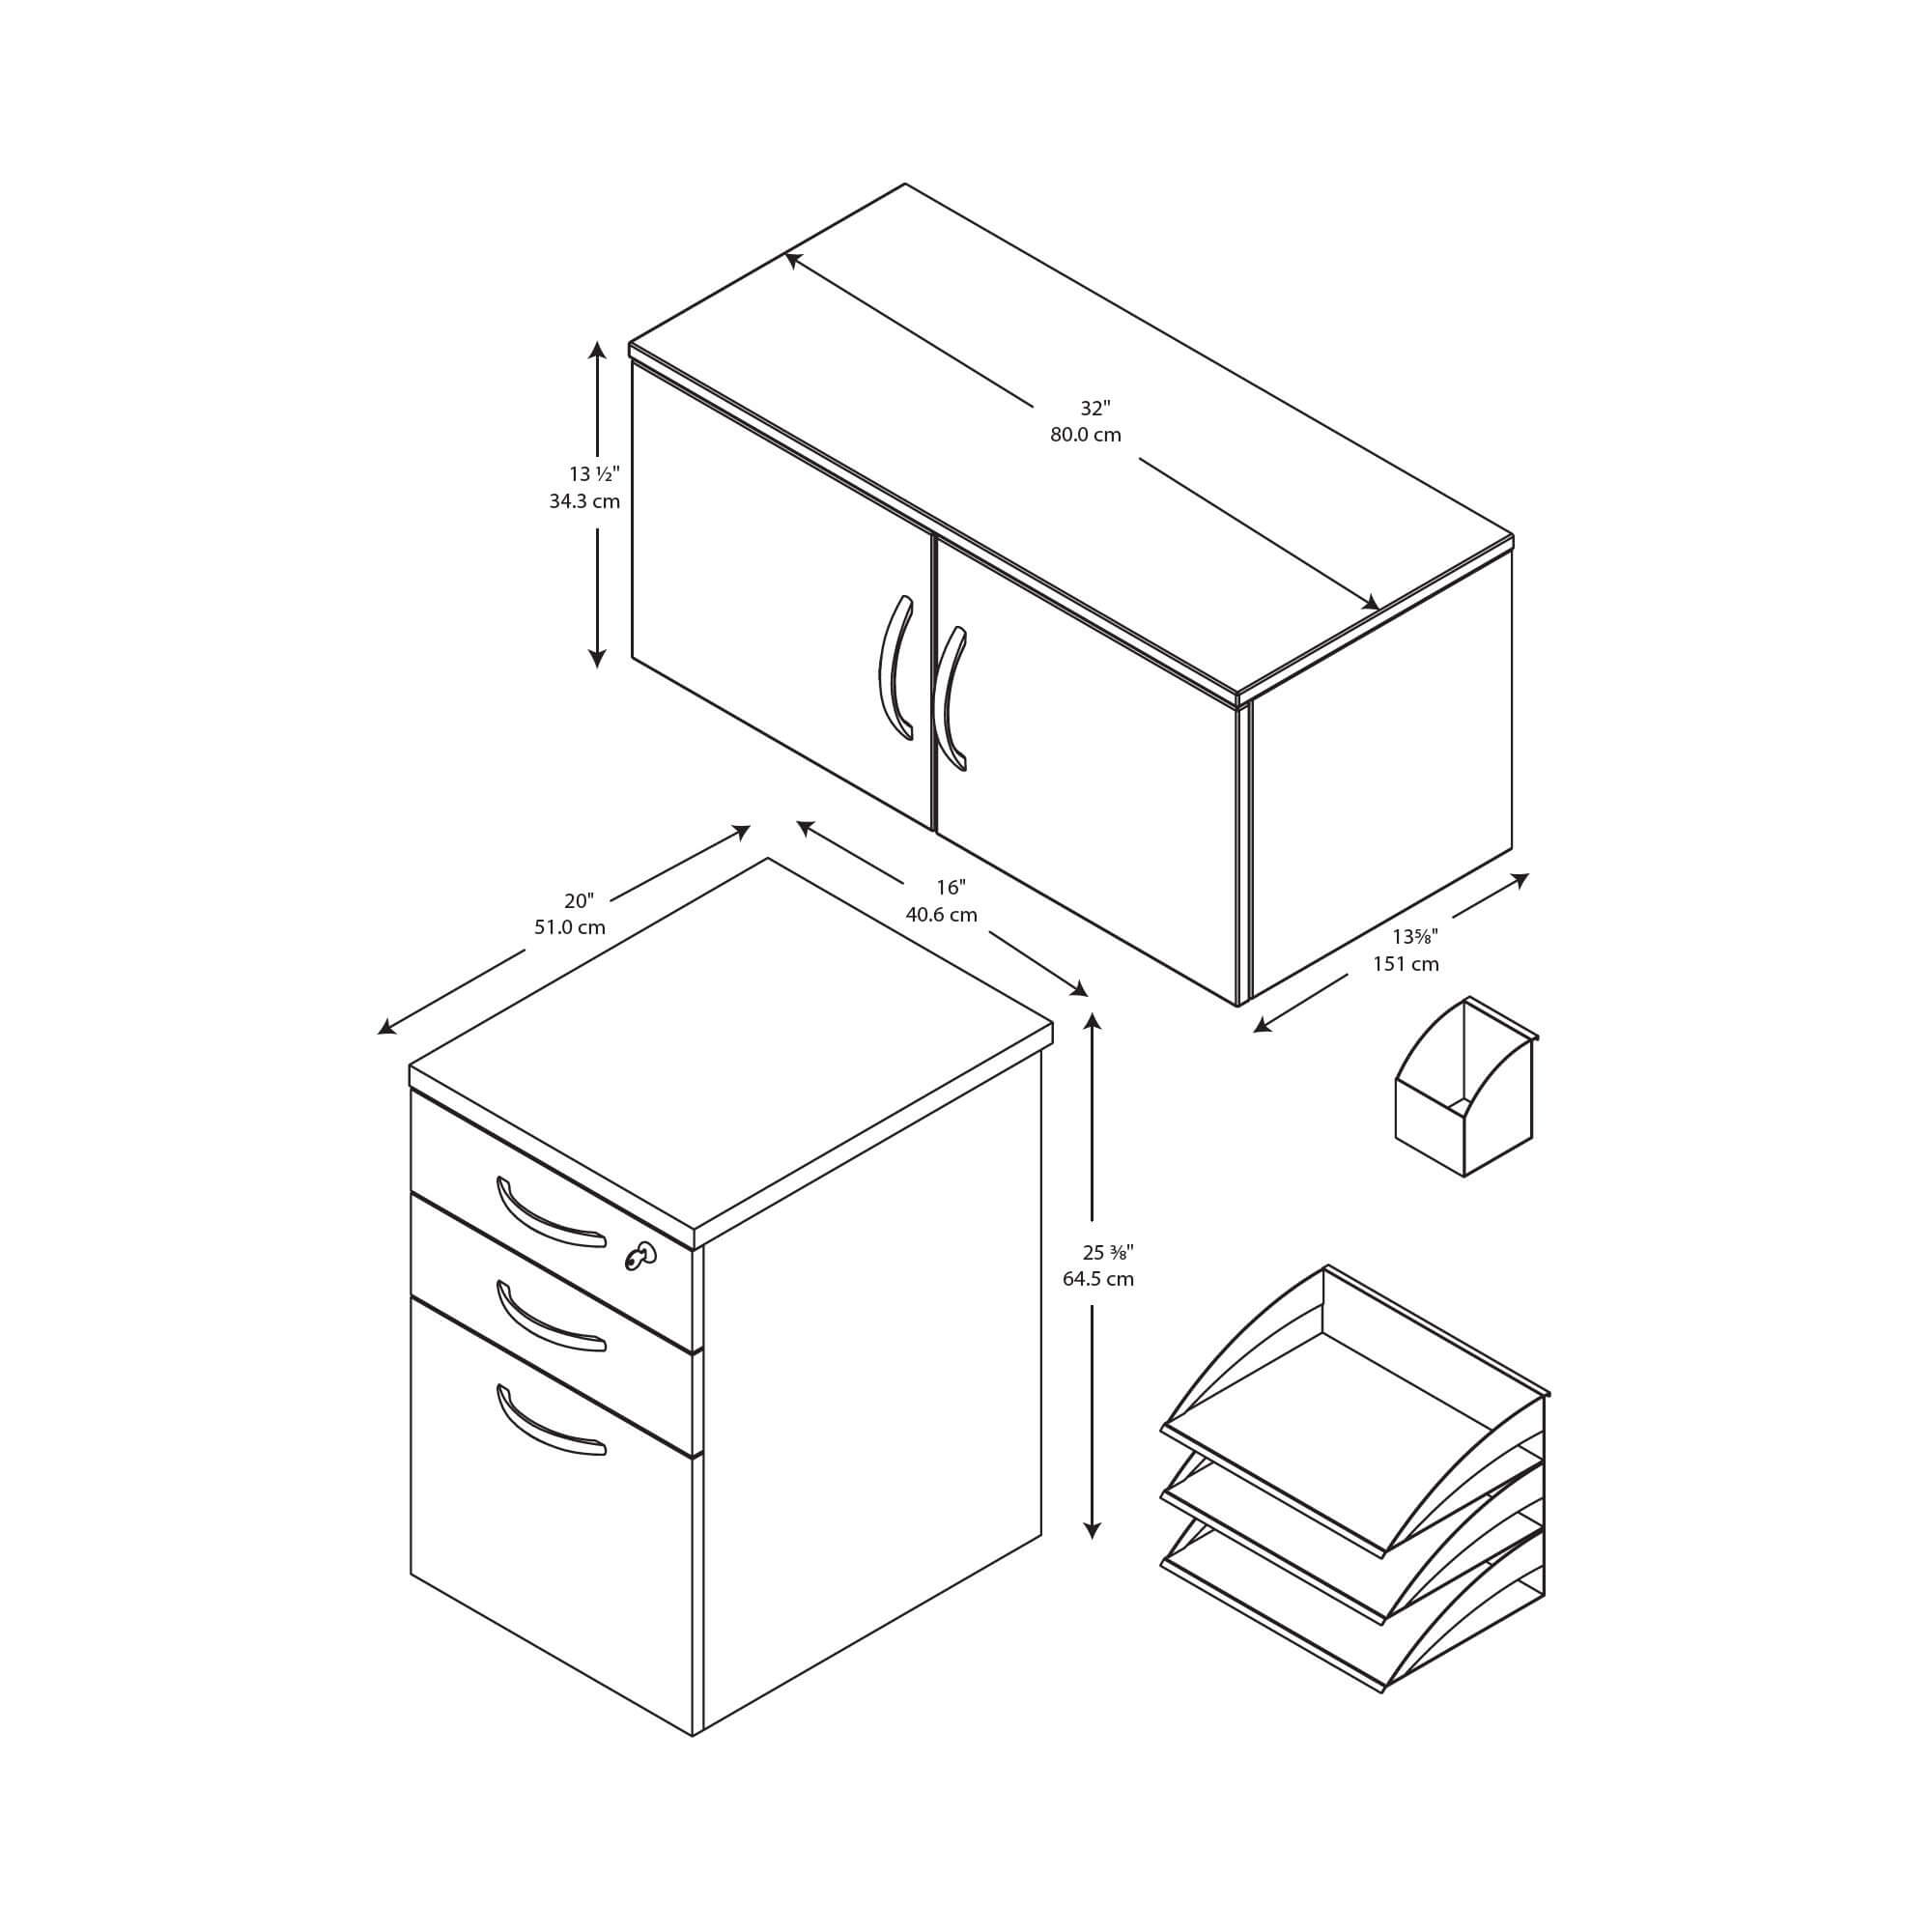 Office cubical storage drawing